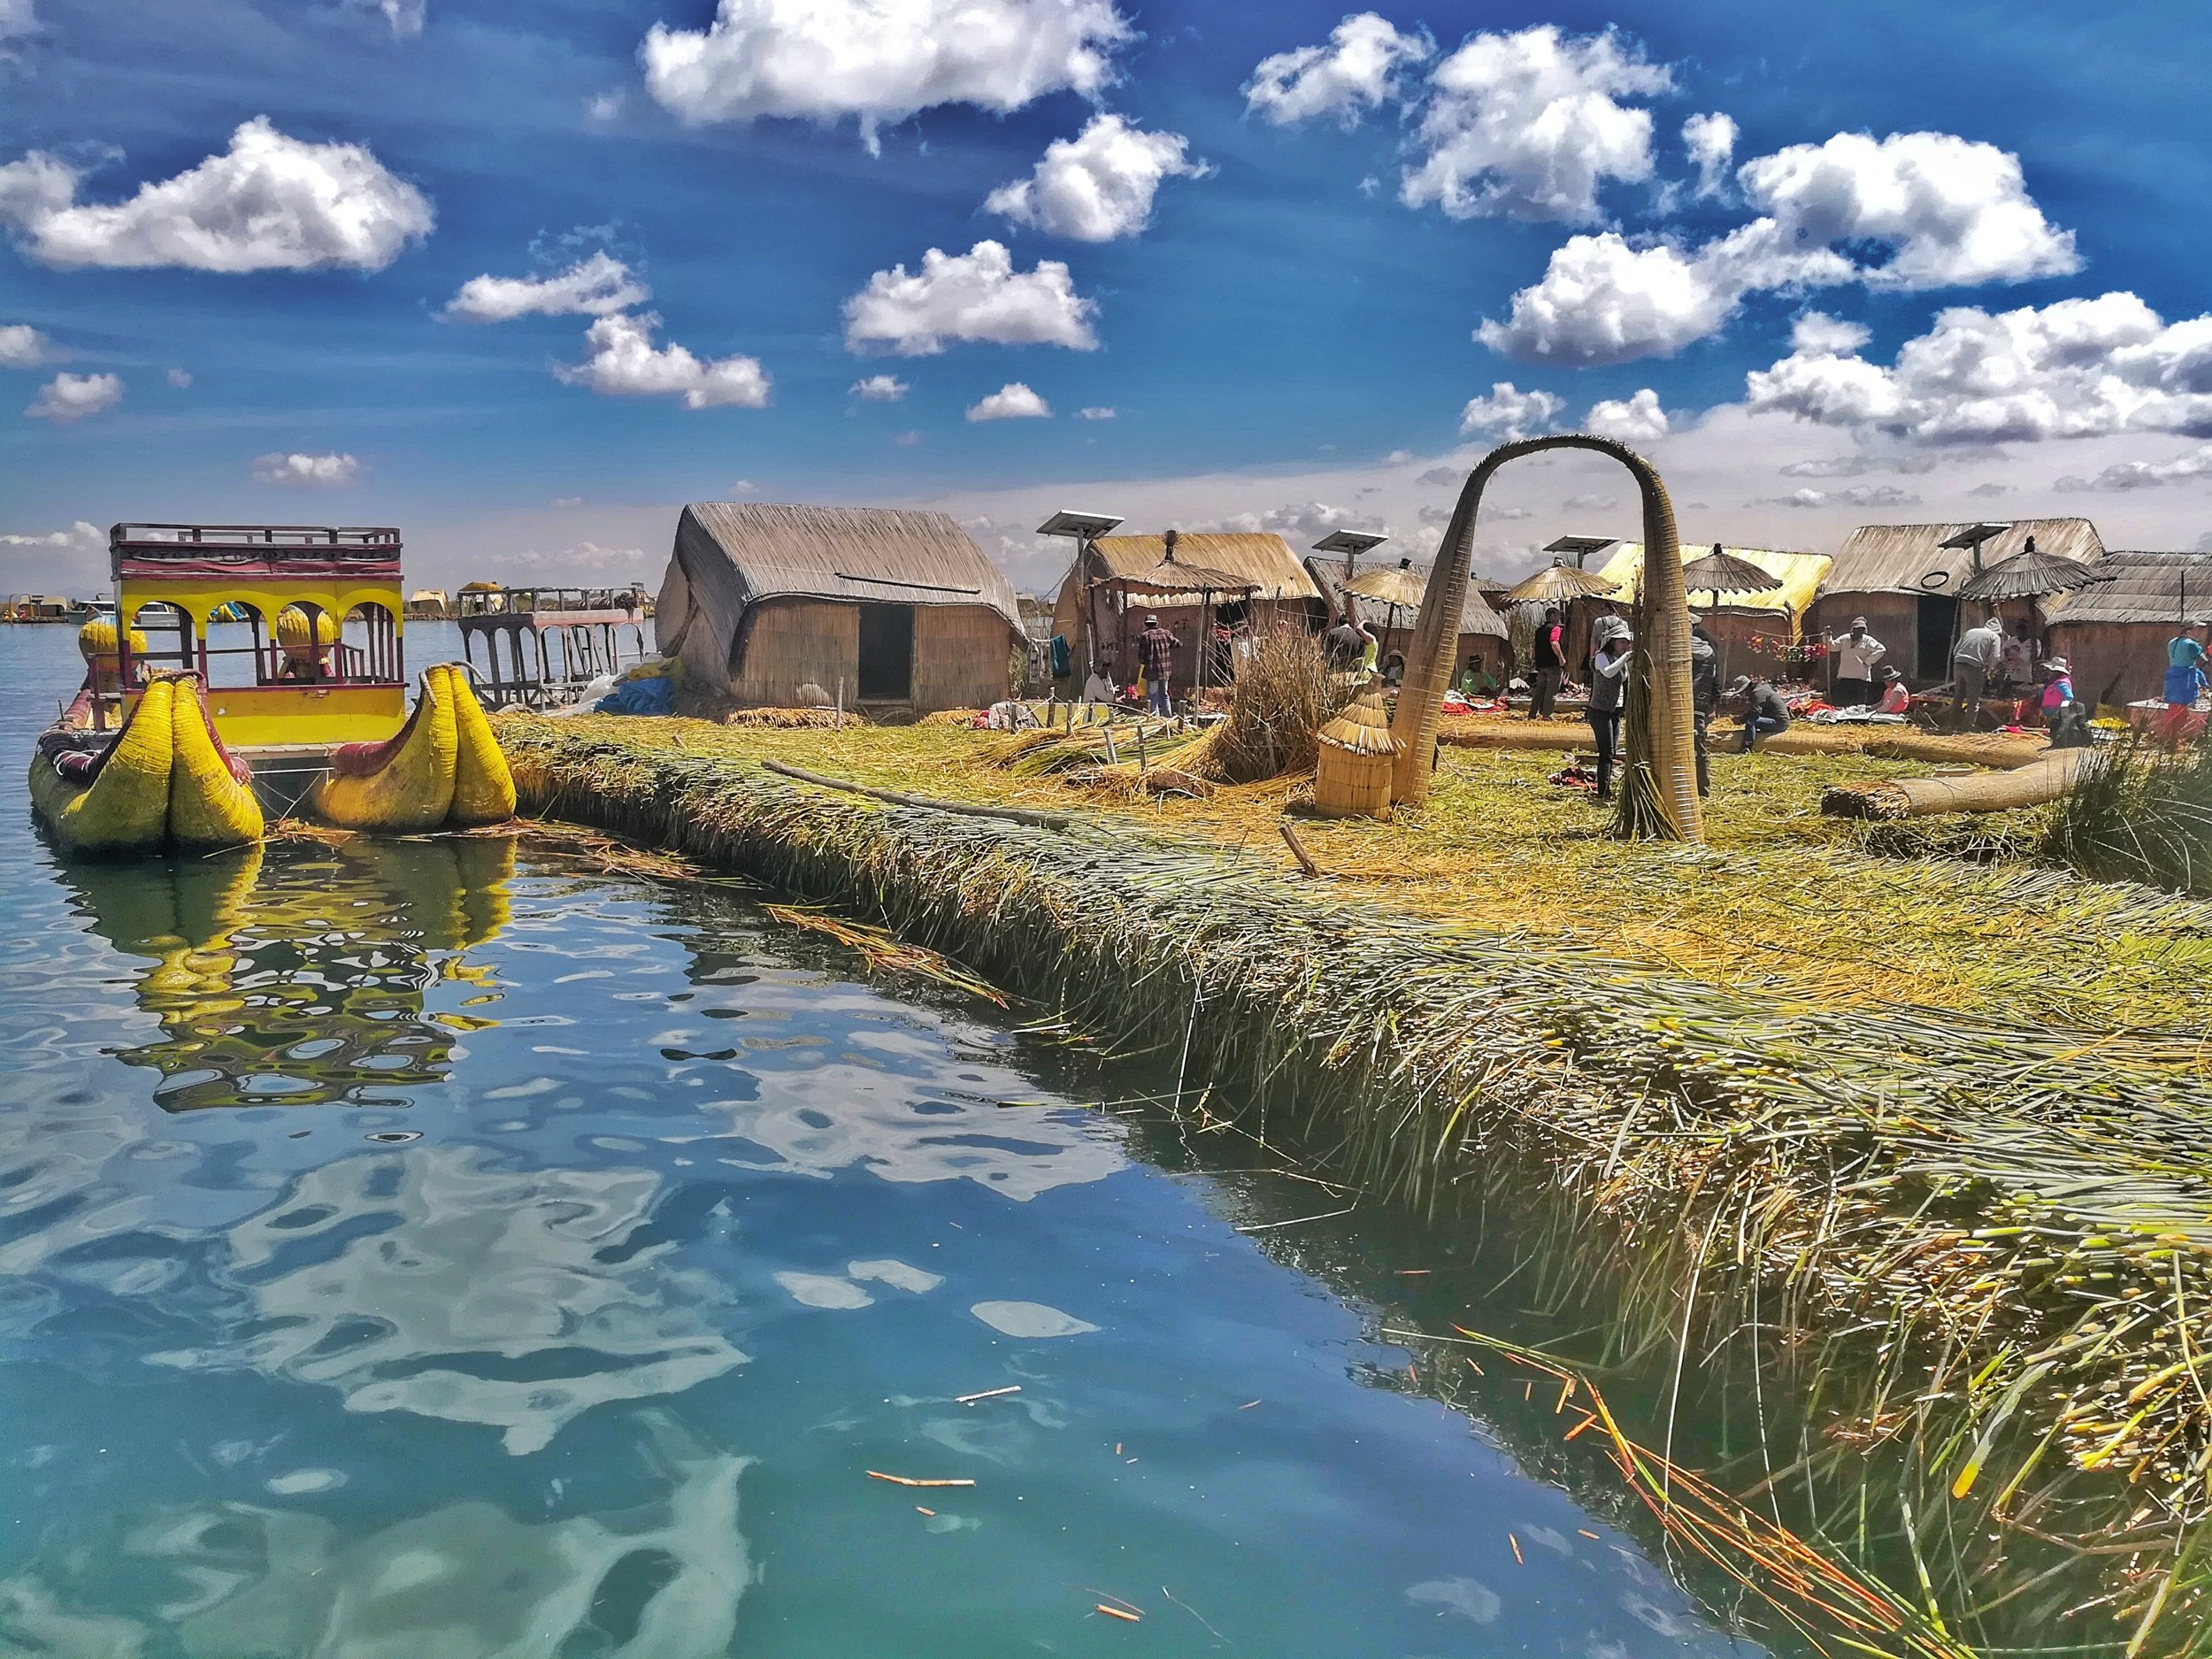 Everything on Uros Islands (including the island itself) is made by hand by the few families that live on it.